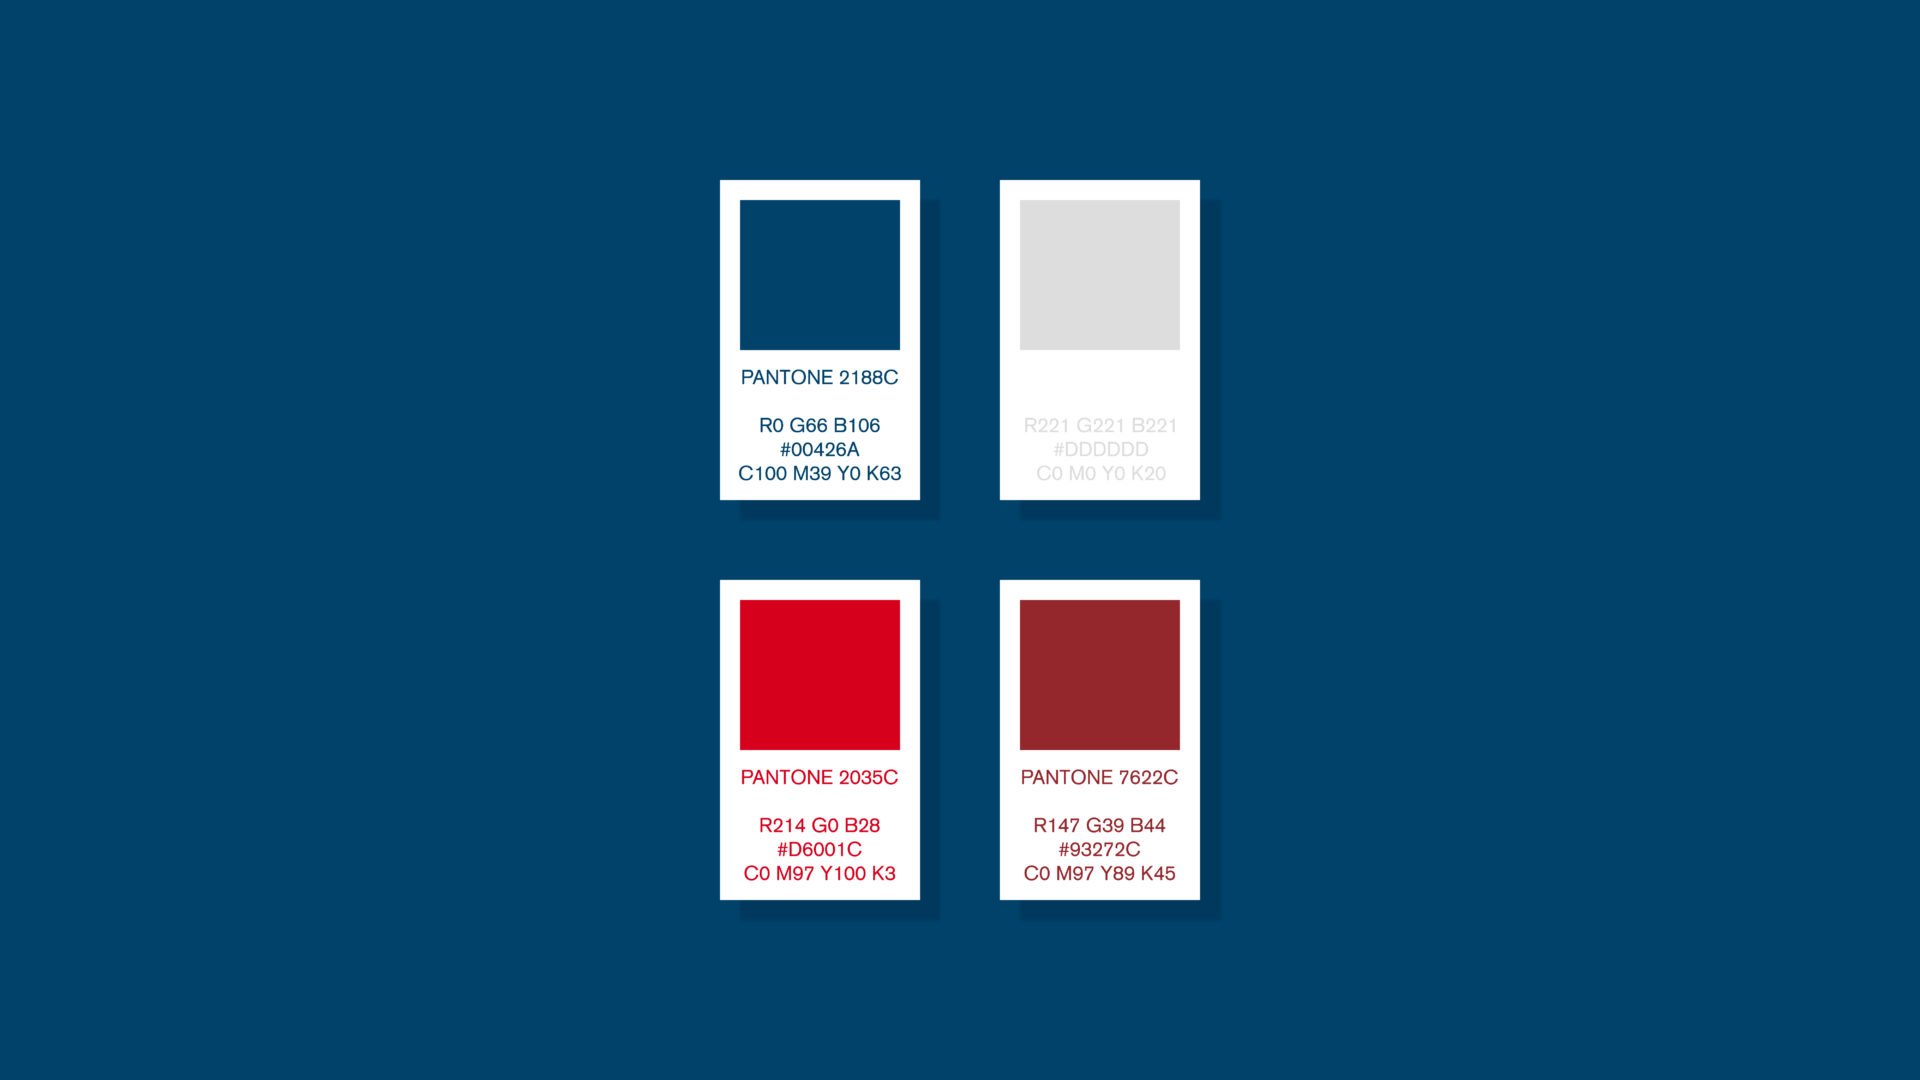 Wellness Brand Design color palette for the new brand identity after rebranding